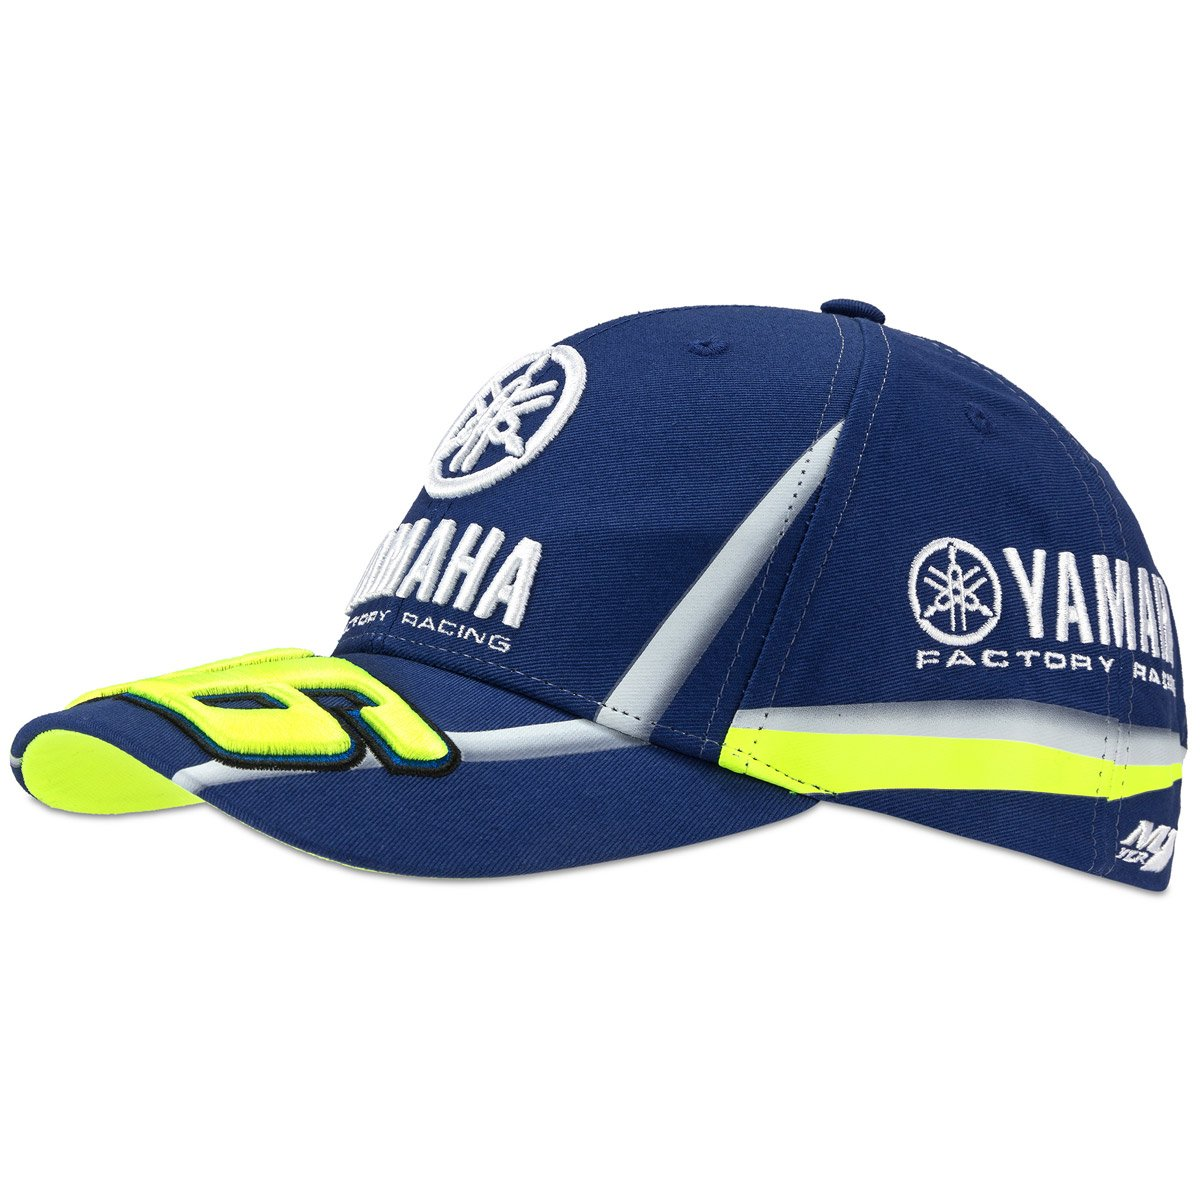 Valentino Rossi VR46 Moto GP M1 Yamaha Factory Racing Team Casquette Officiel 2018 VR/46